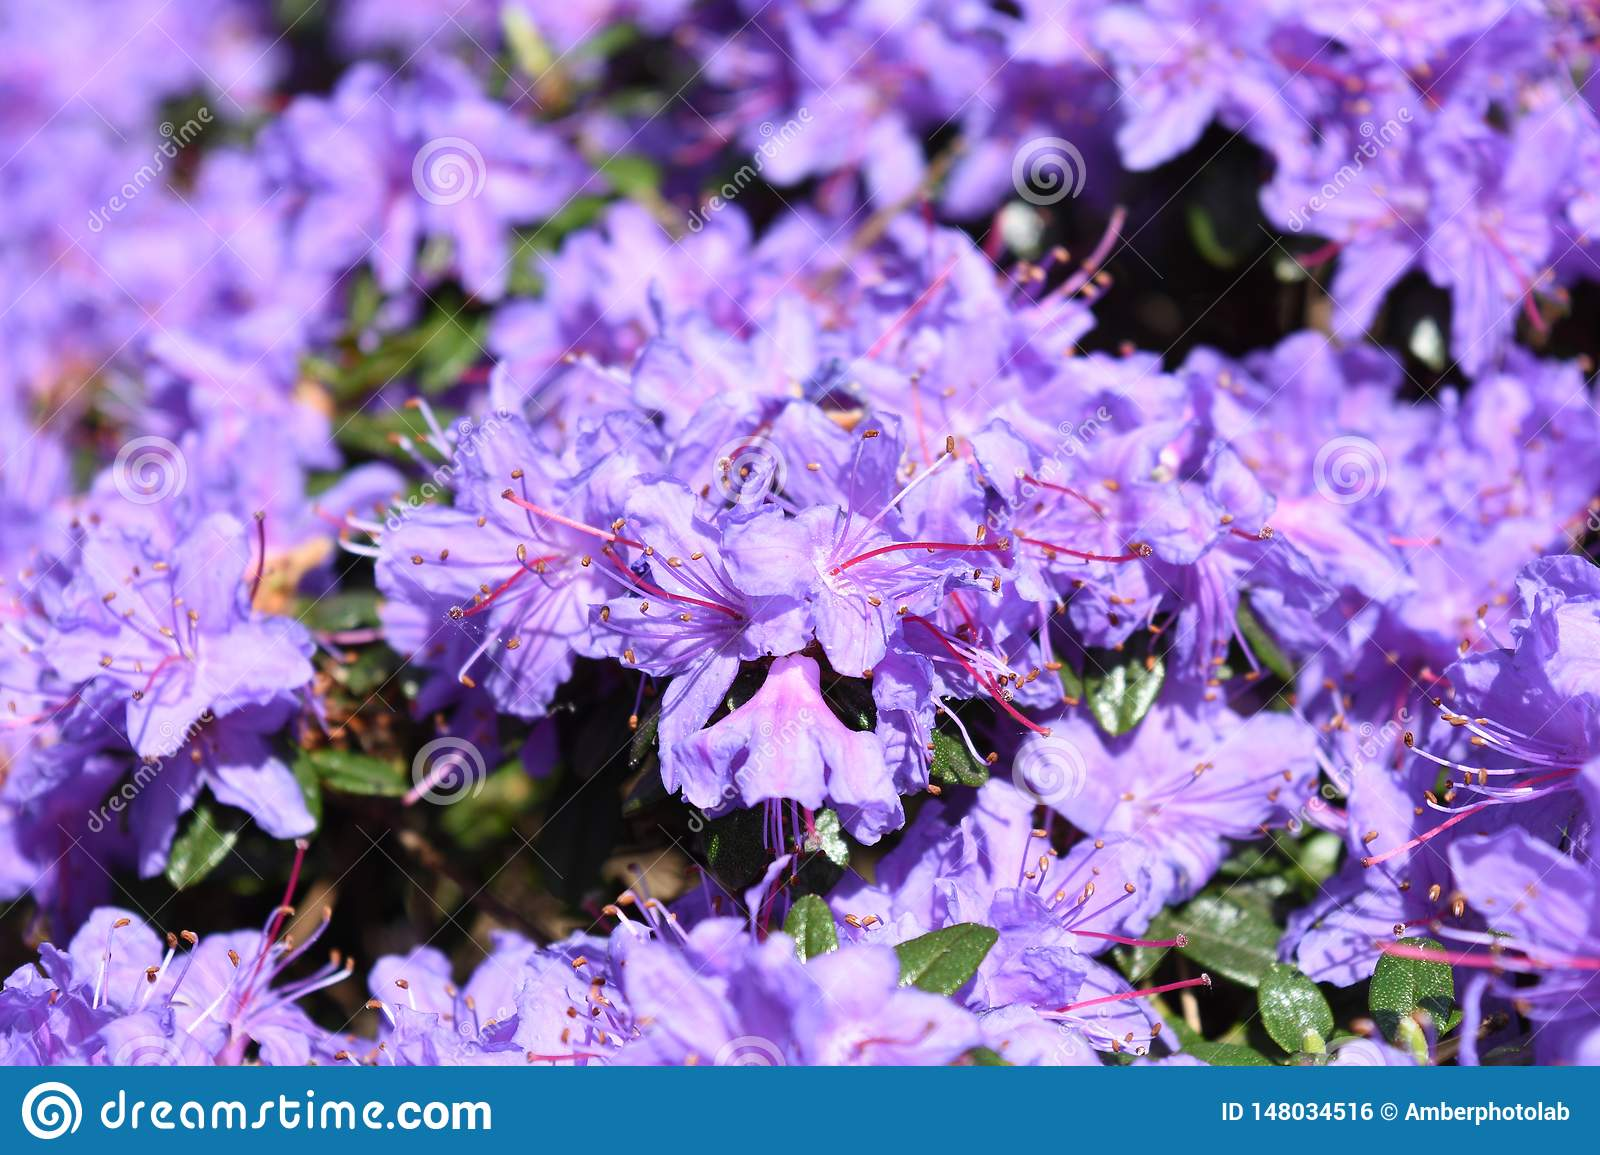 Vivid Light Purple Blue Rhododendron Flowers Blossom Bloom